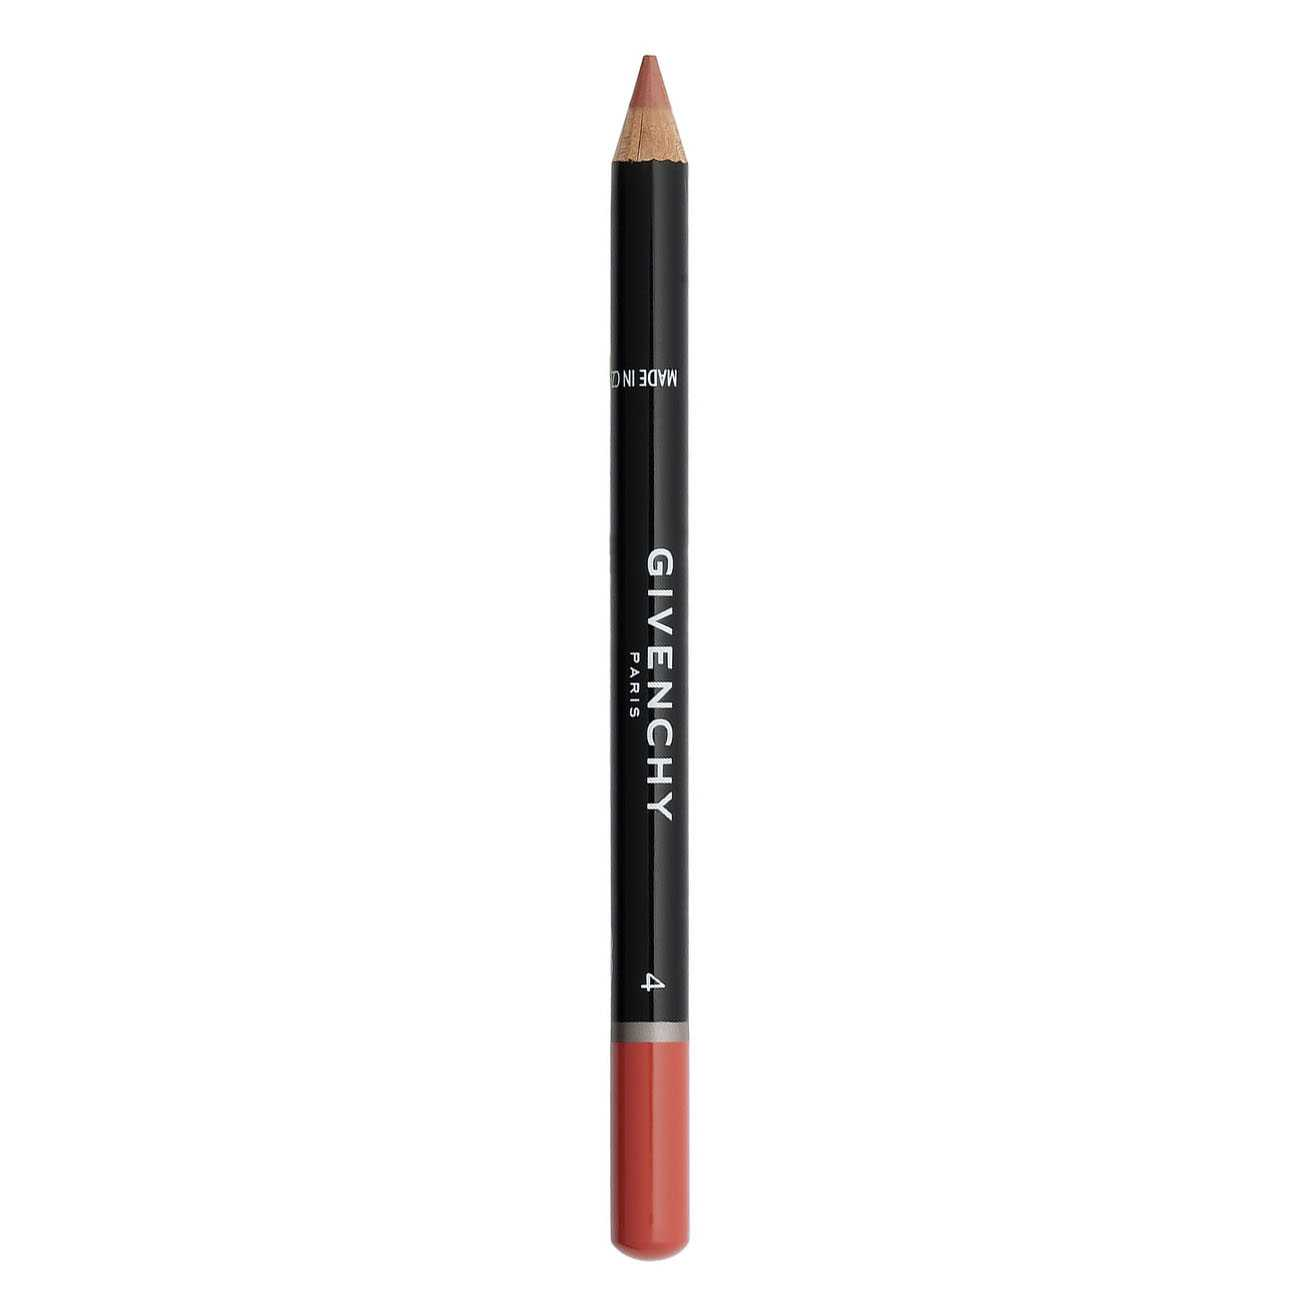 Lip Liner 2 G Orange 4 Givenchy imagine 2021 bestvalue.eu